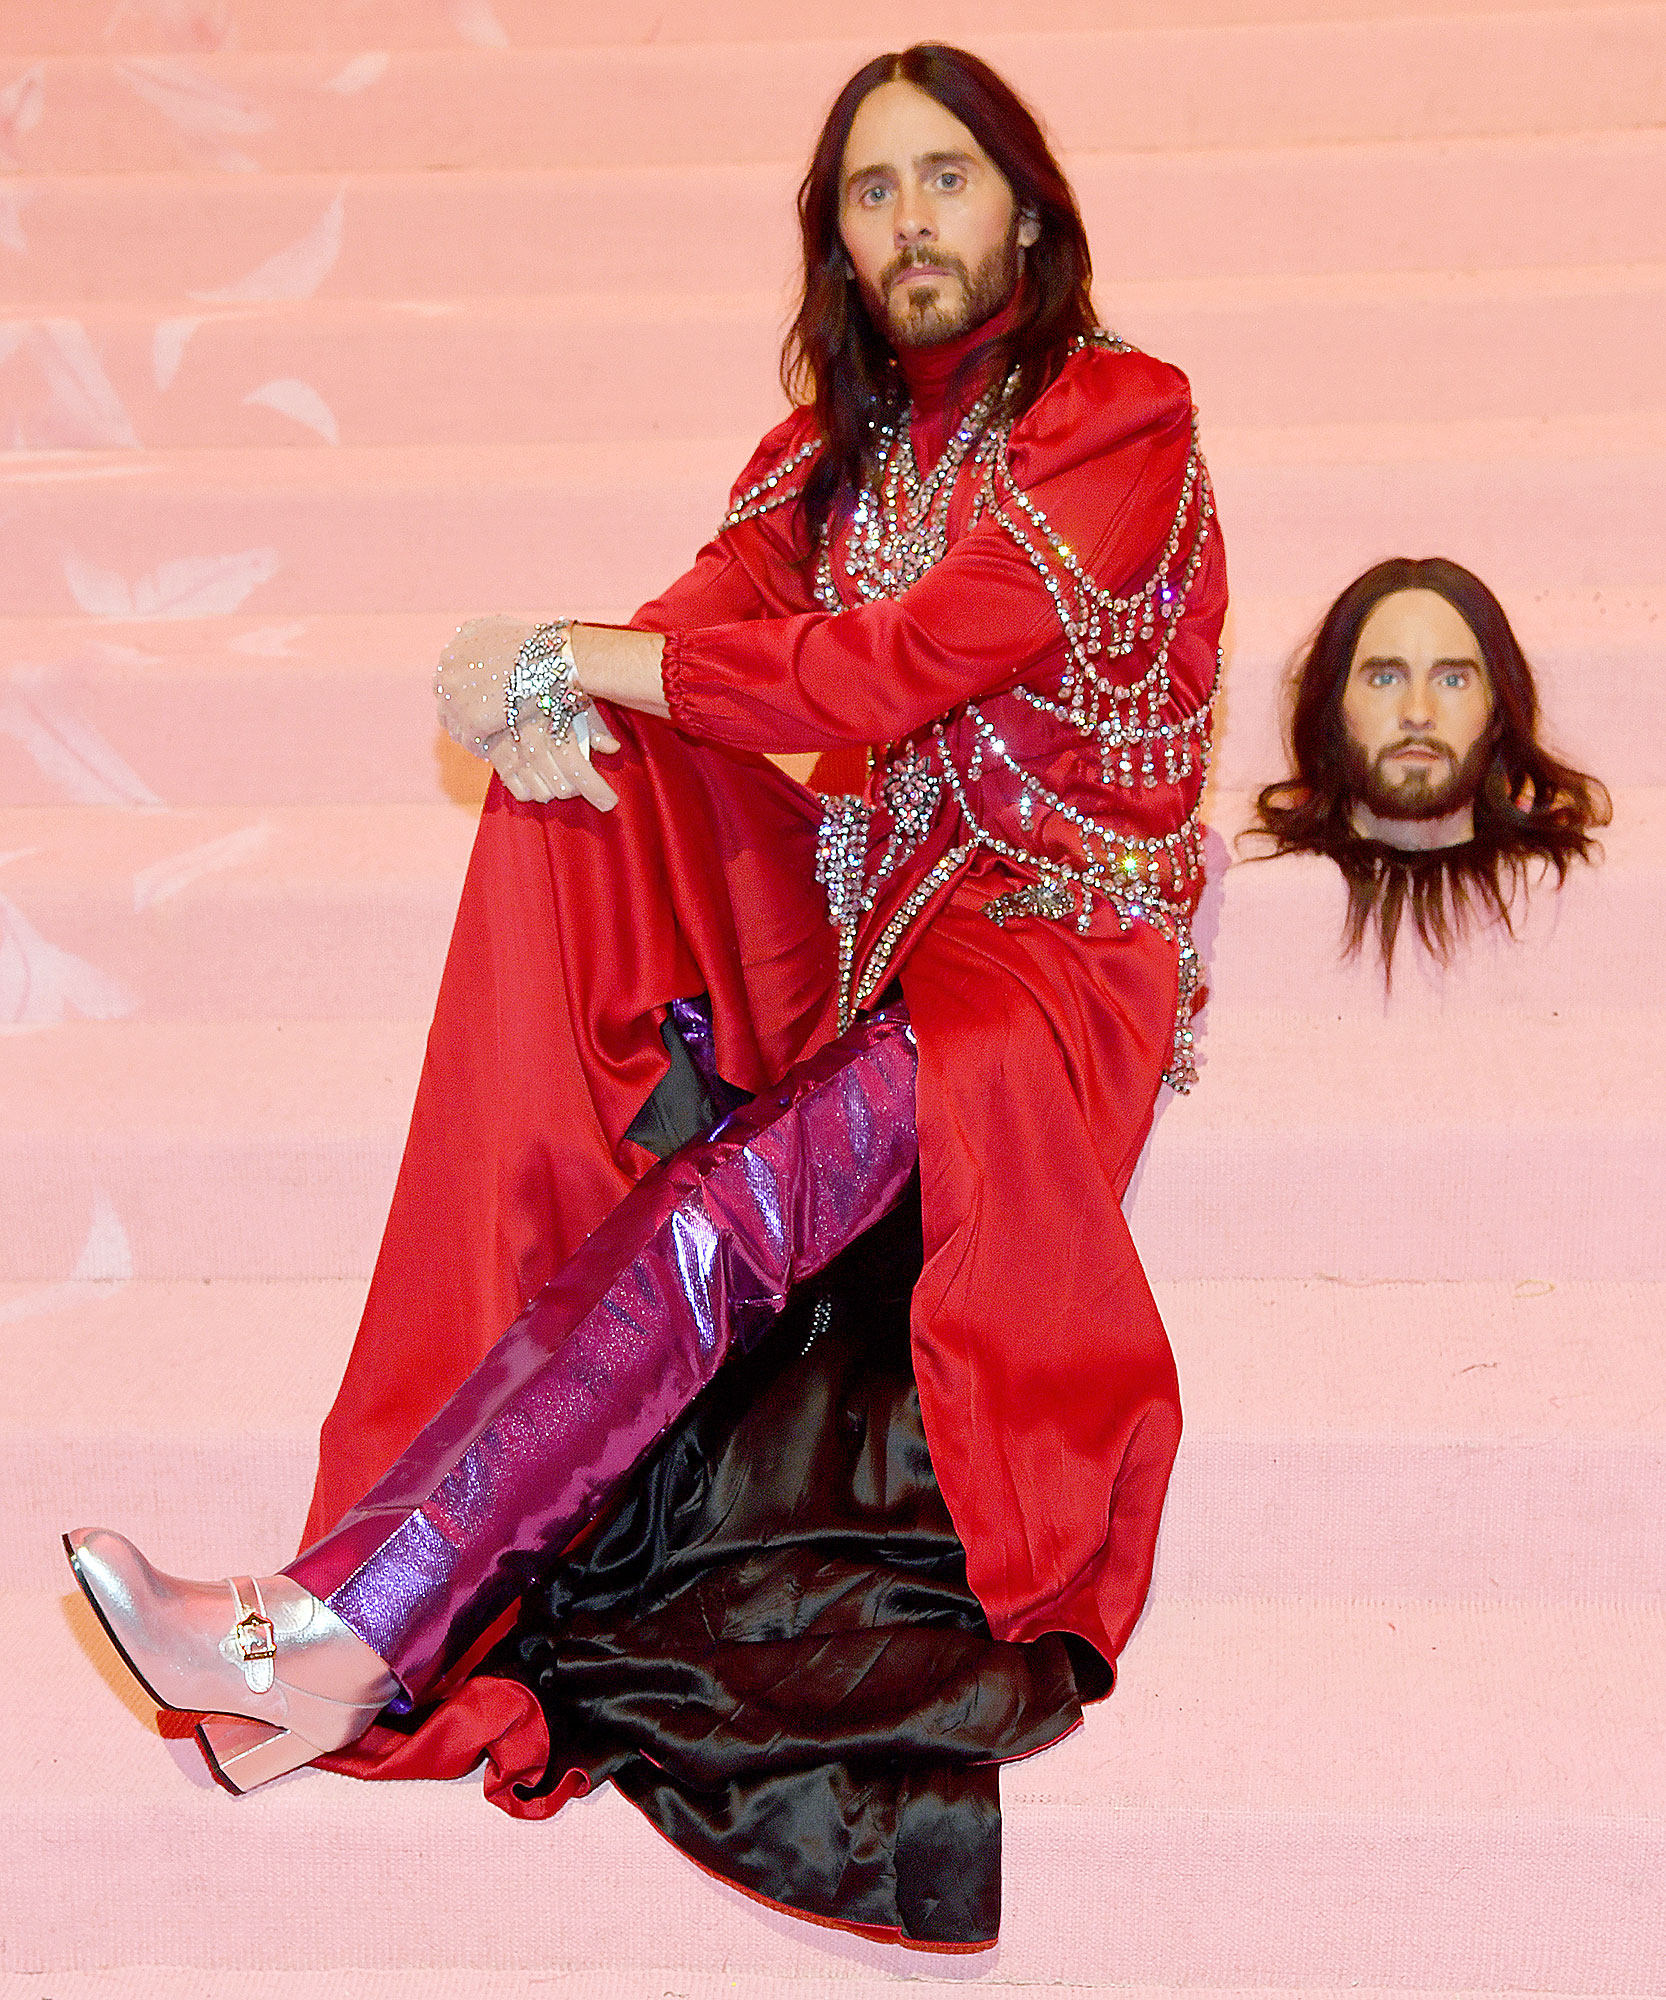 Met Gala 2019 What You Didnt See Jared Leto - Jared Leto rested his severed head next to him on the Met steps.